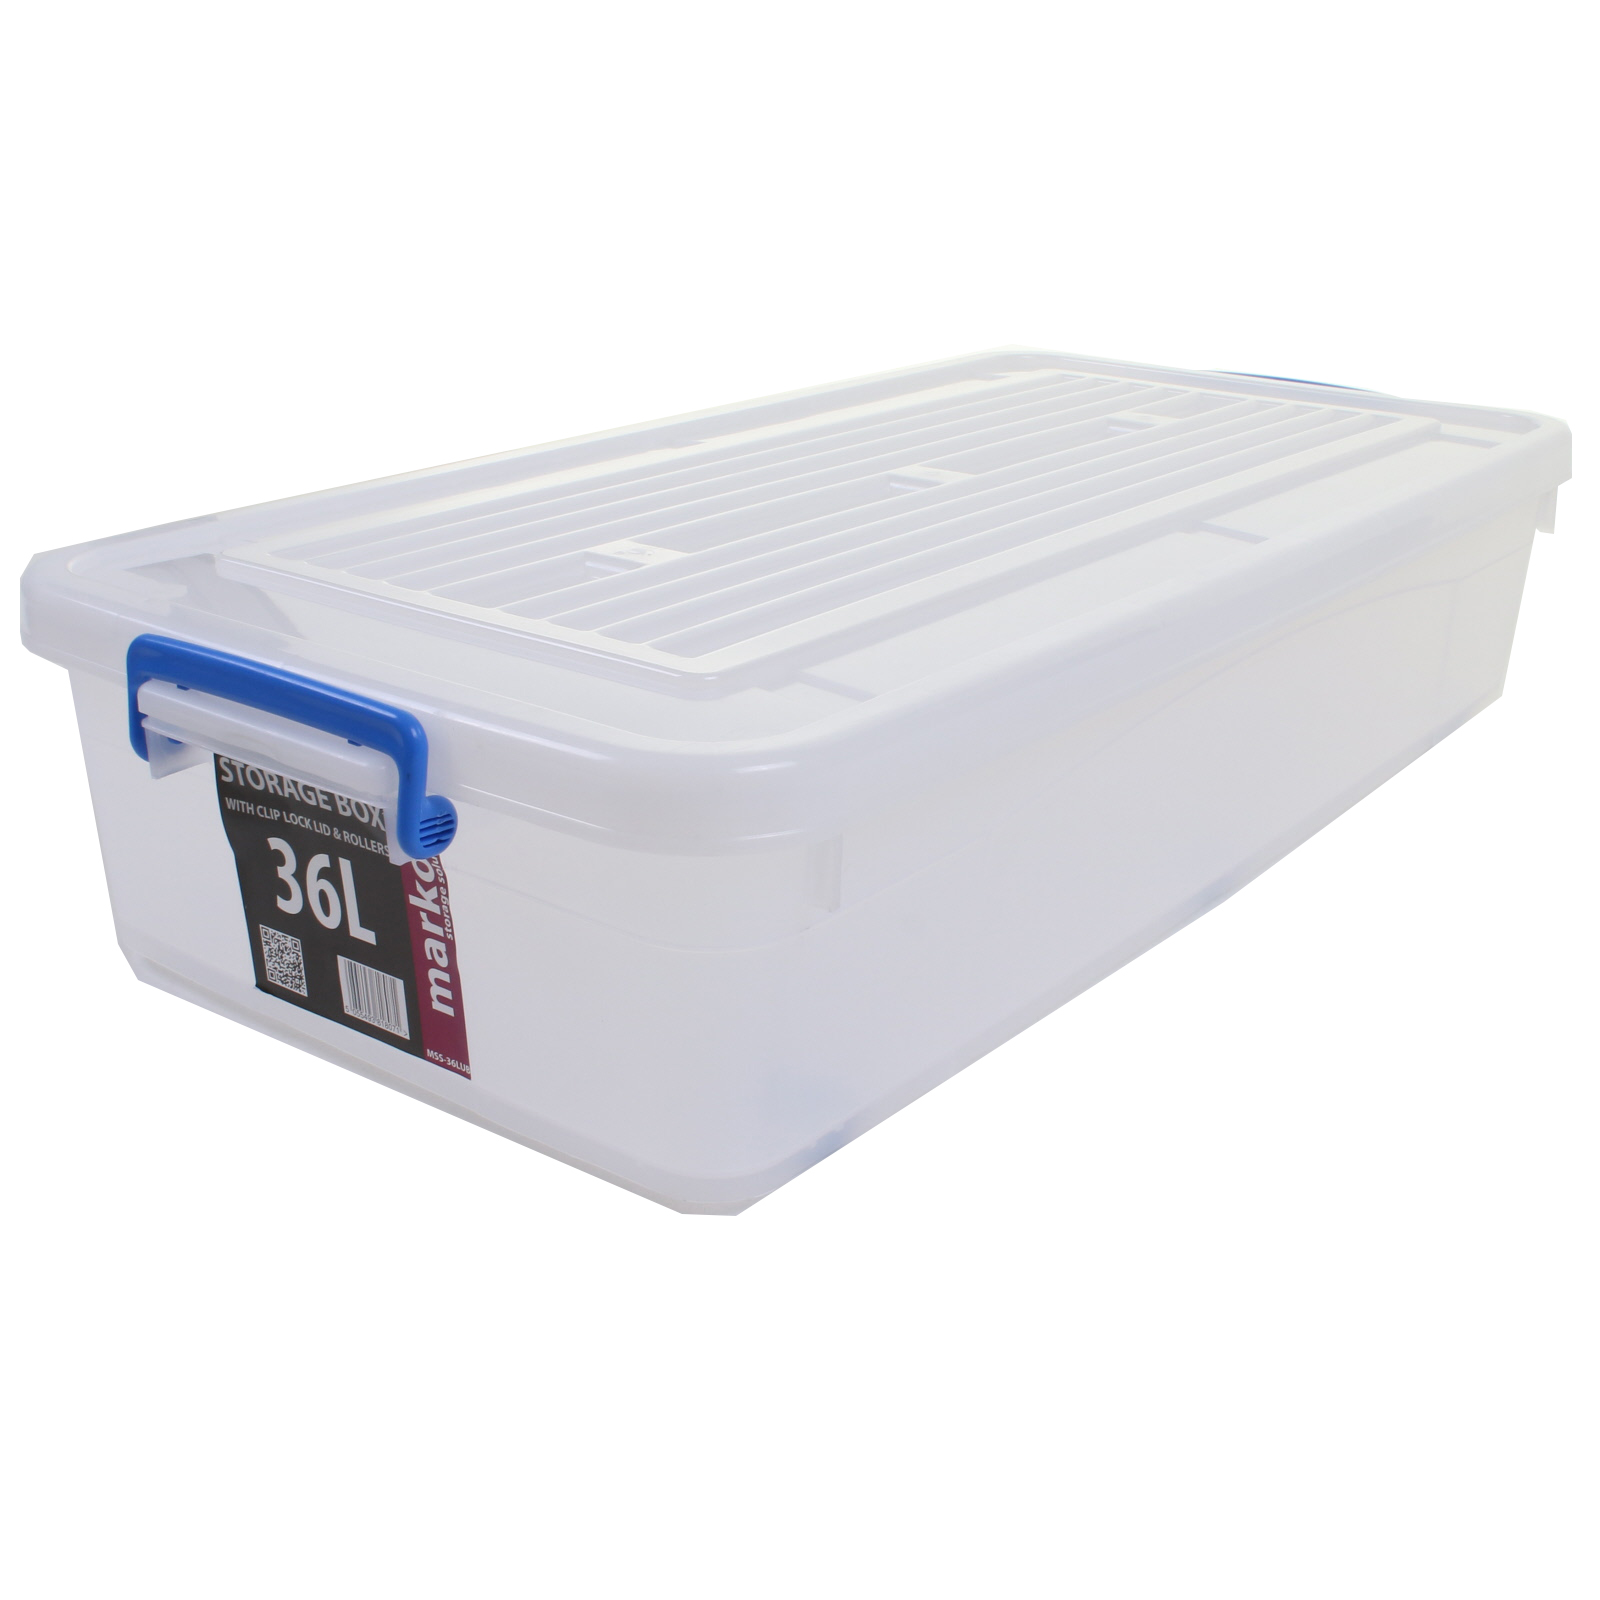 EXTRA LARGE HUGE STRONG PLASTIC STORAGE BOXES WHEELS CLIP ...